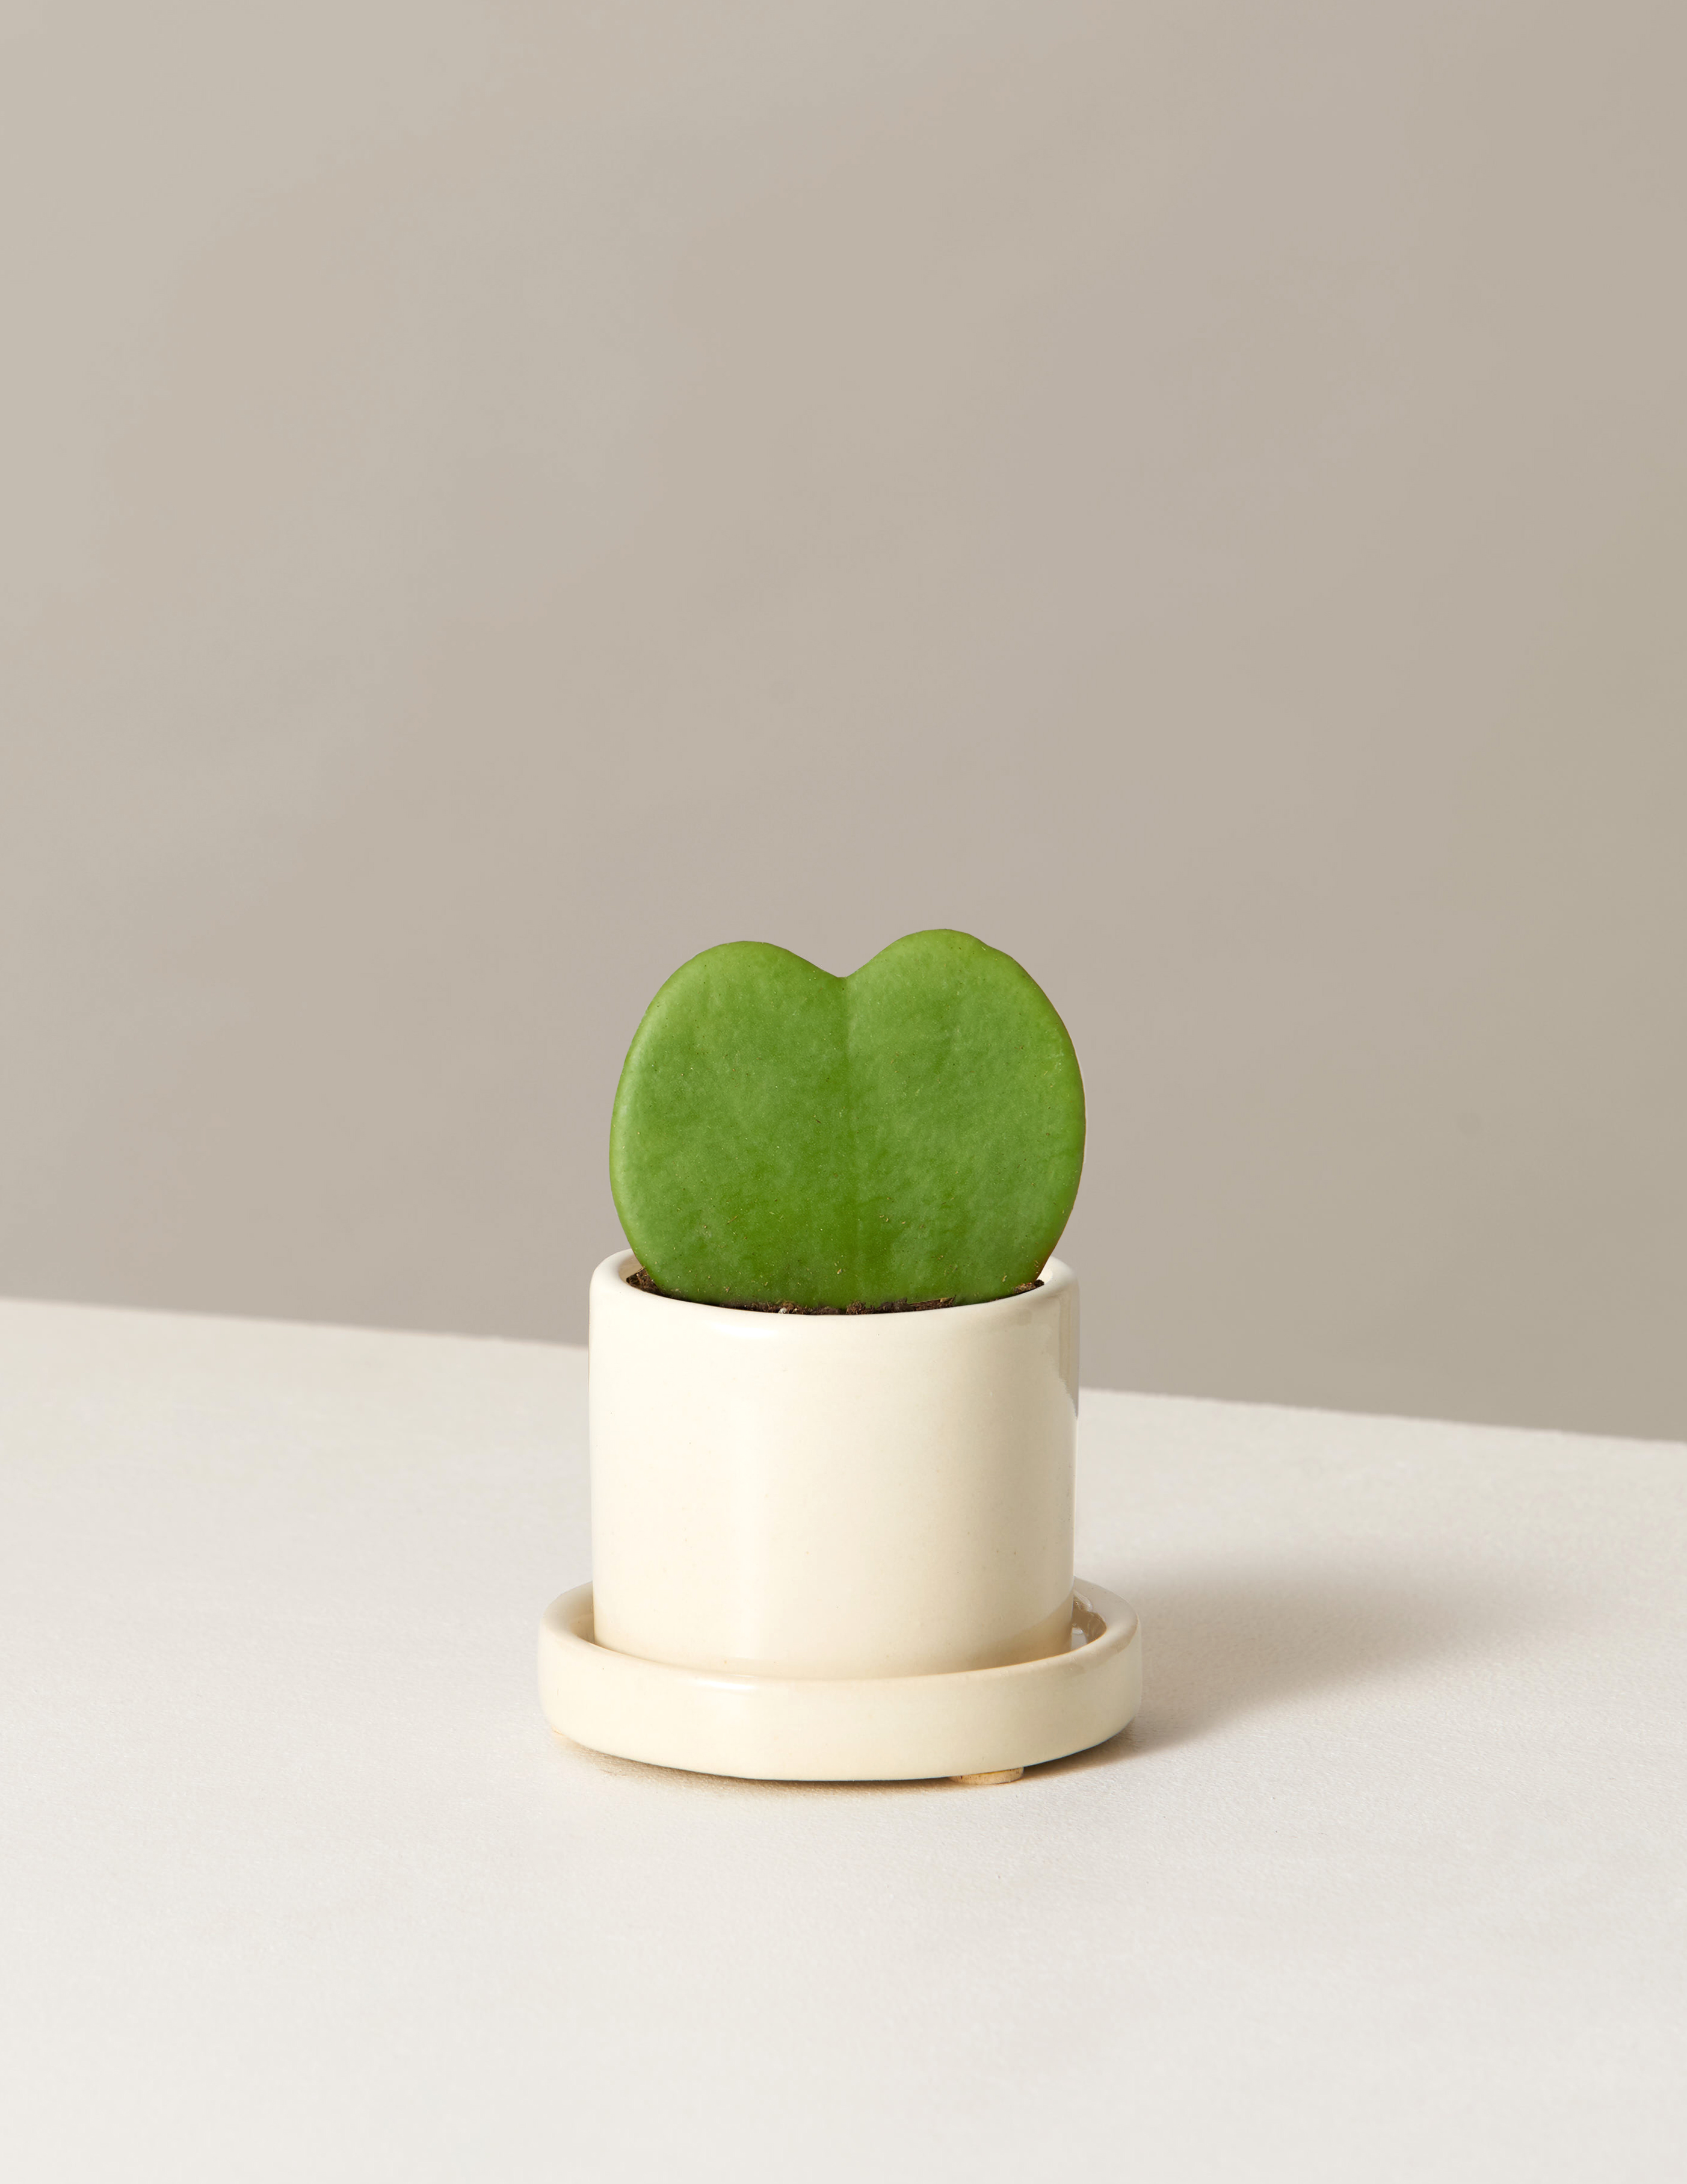 """25 Unexpected Ways To Say """"I Love You"""" this Valentine's Day, The Sill Hoya Kerrii Plant"""